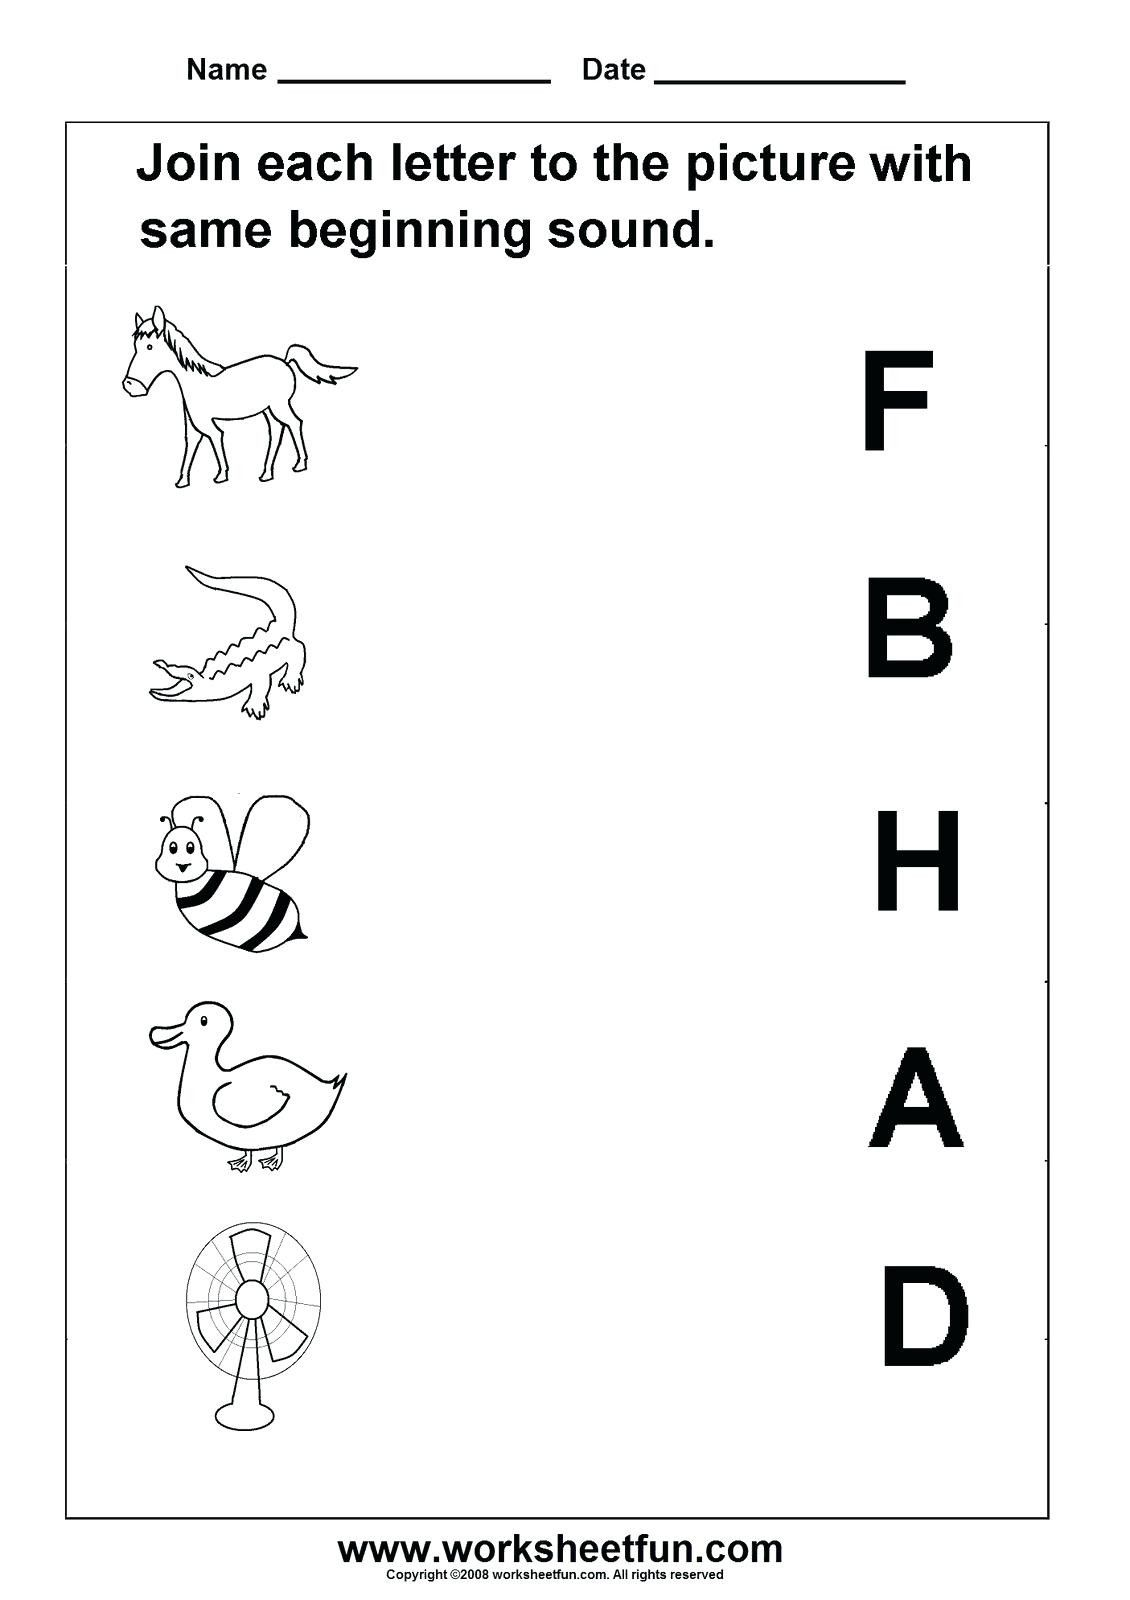 5 Preschool Worksheets Alphabet Free In